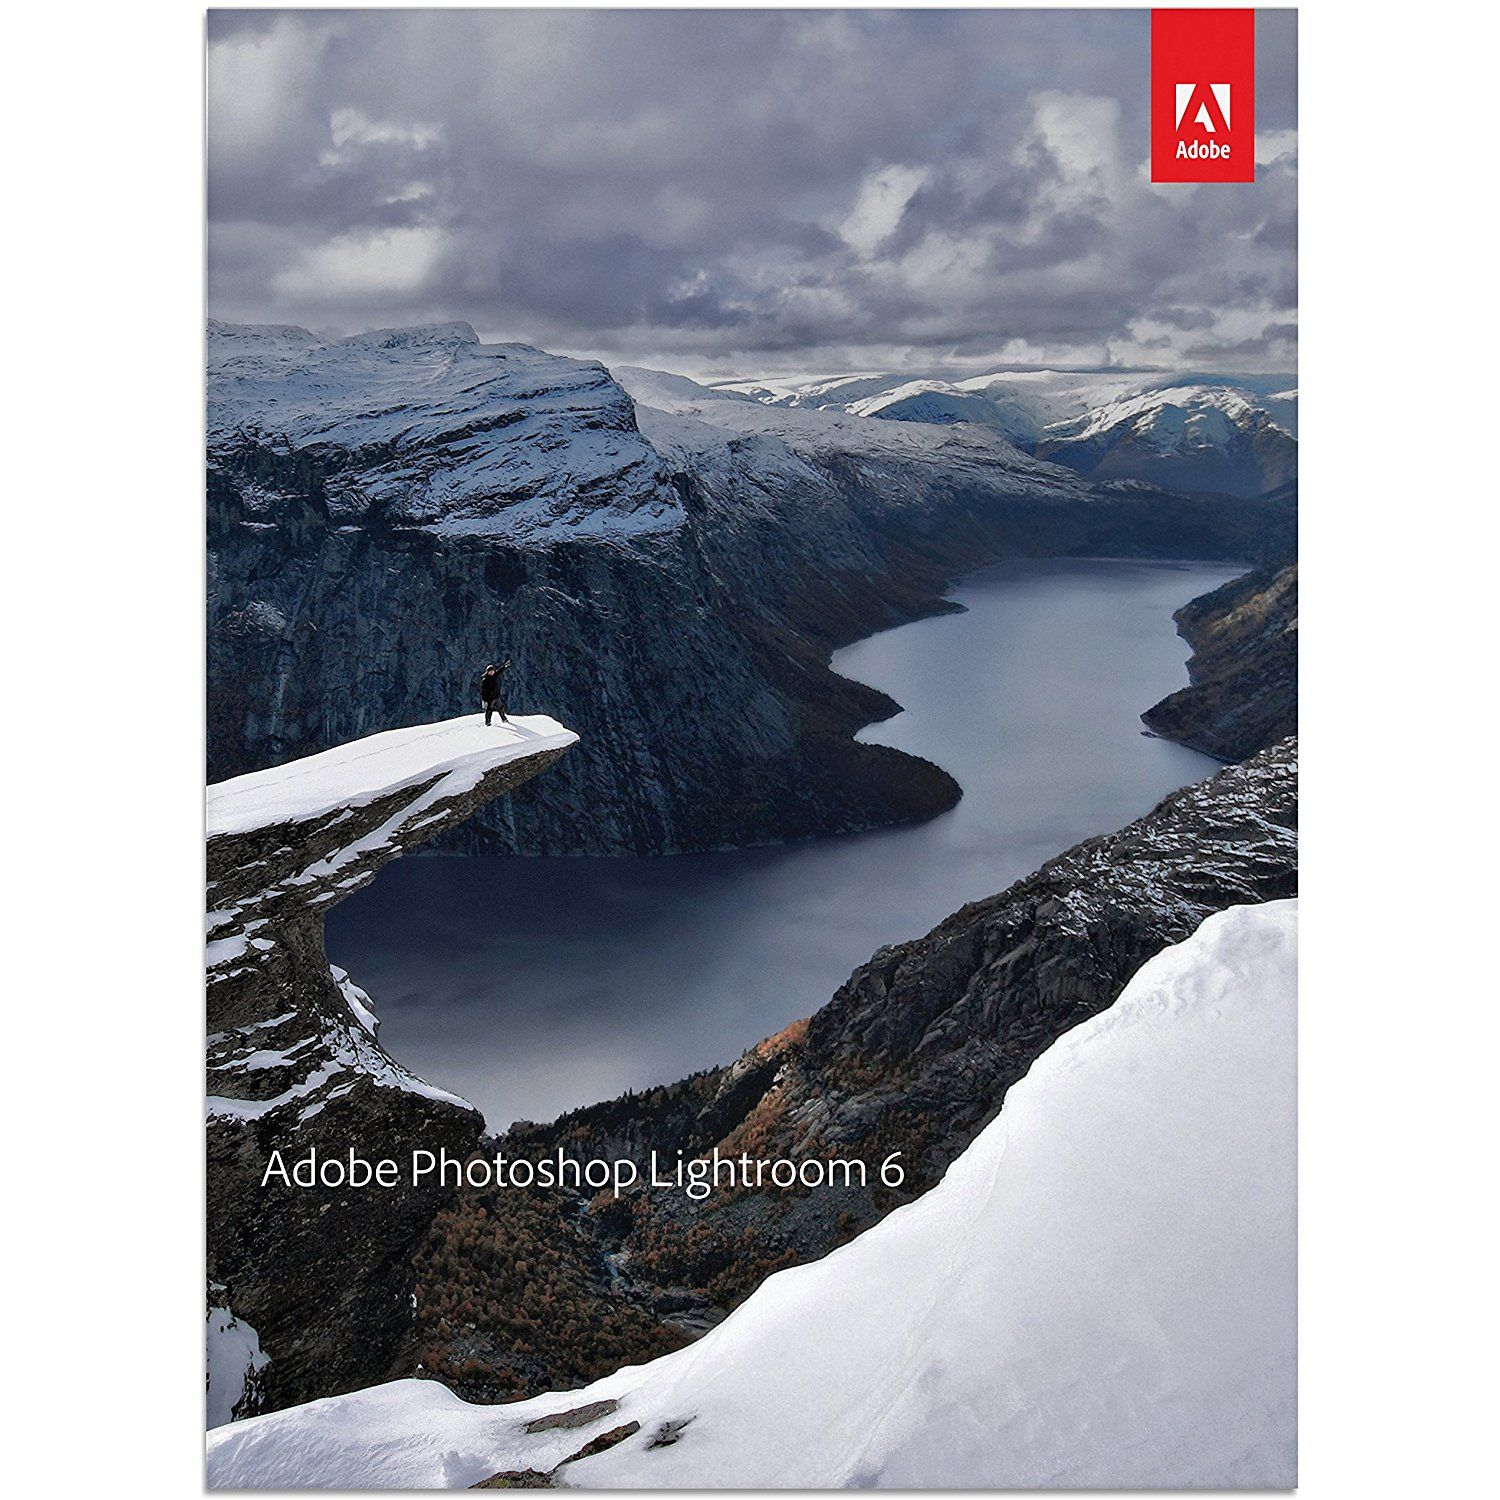 Adobe Photoshop Lightroom 6 Pc Download Check Out The Image By Visiting The Link This Adobe Photoshop Lightroom Photoshop Lightroom Lightroom